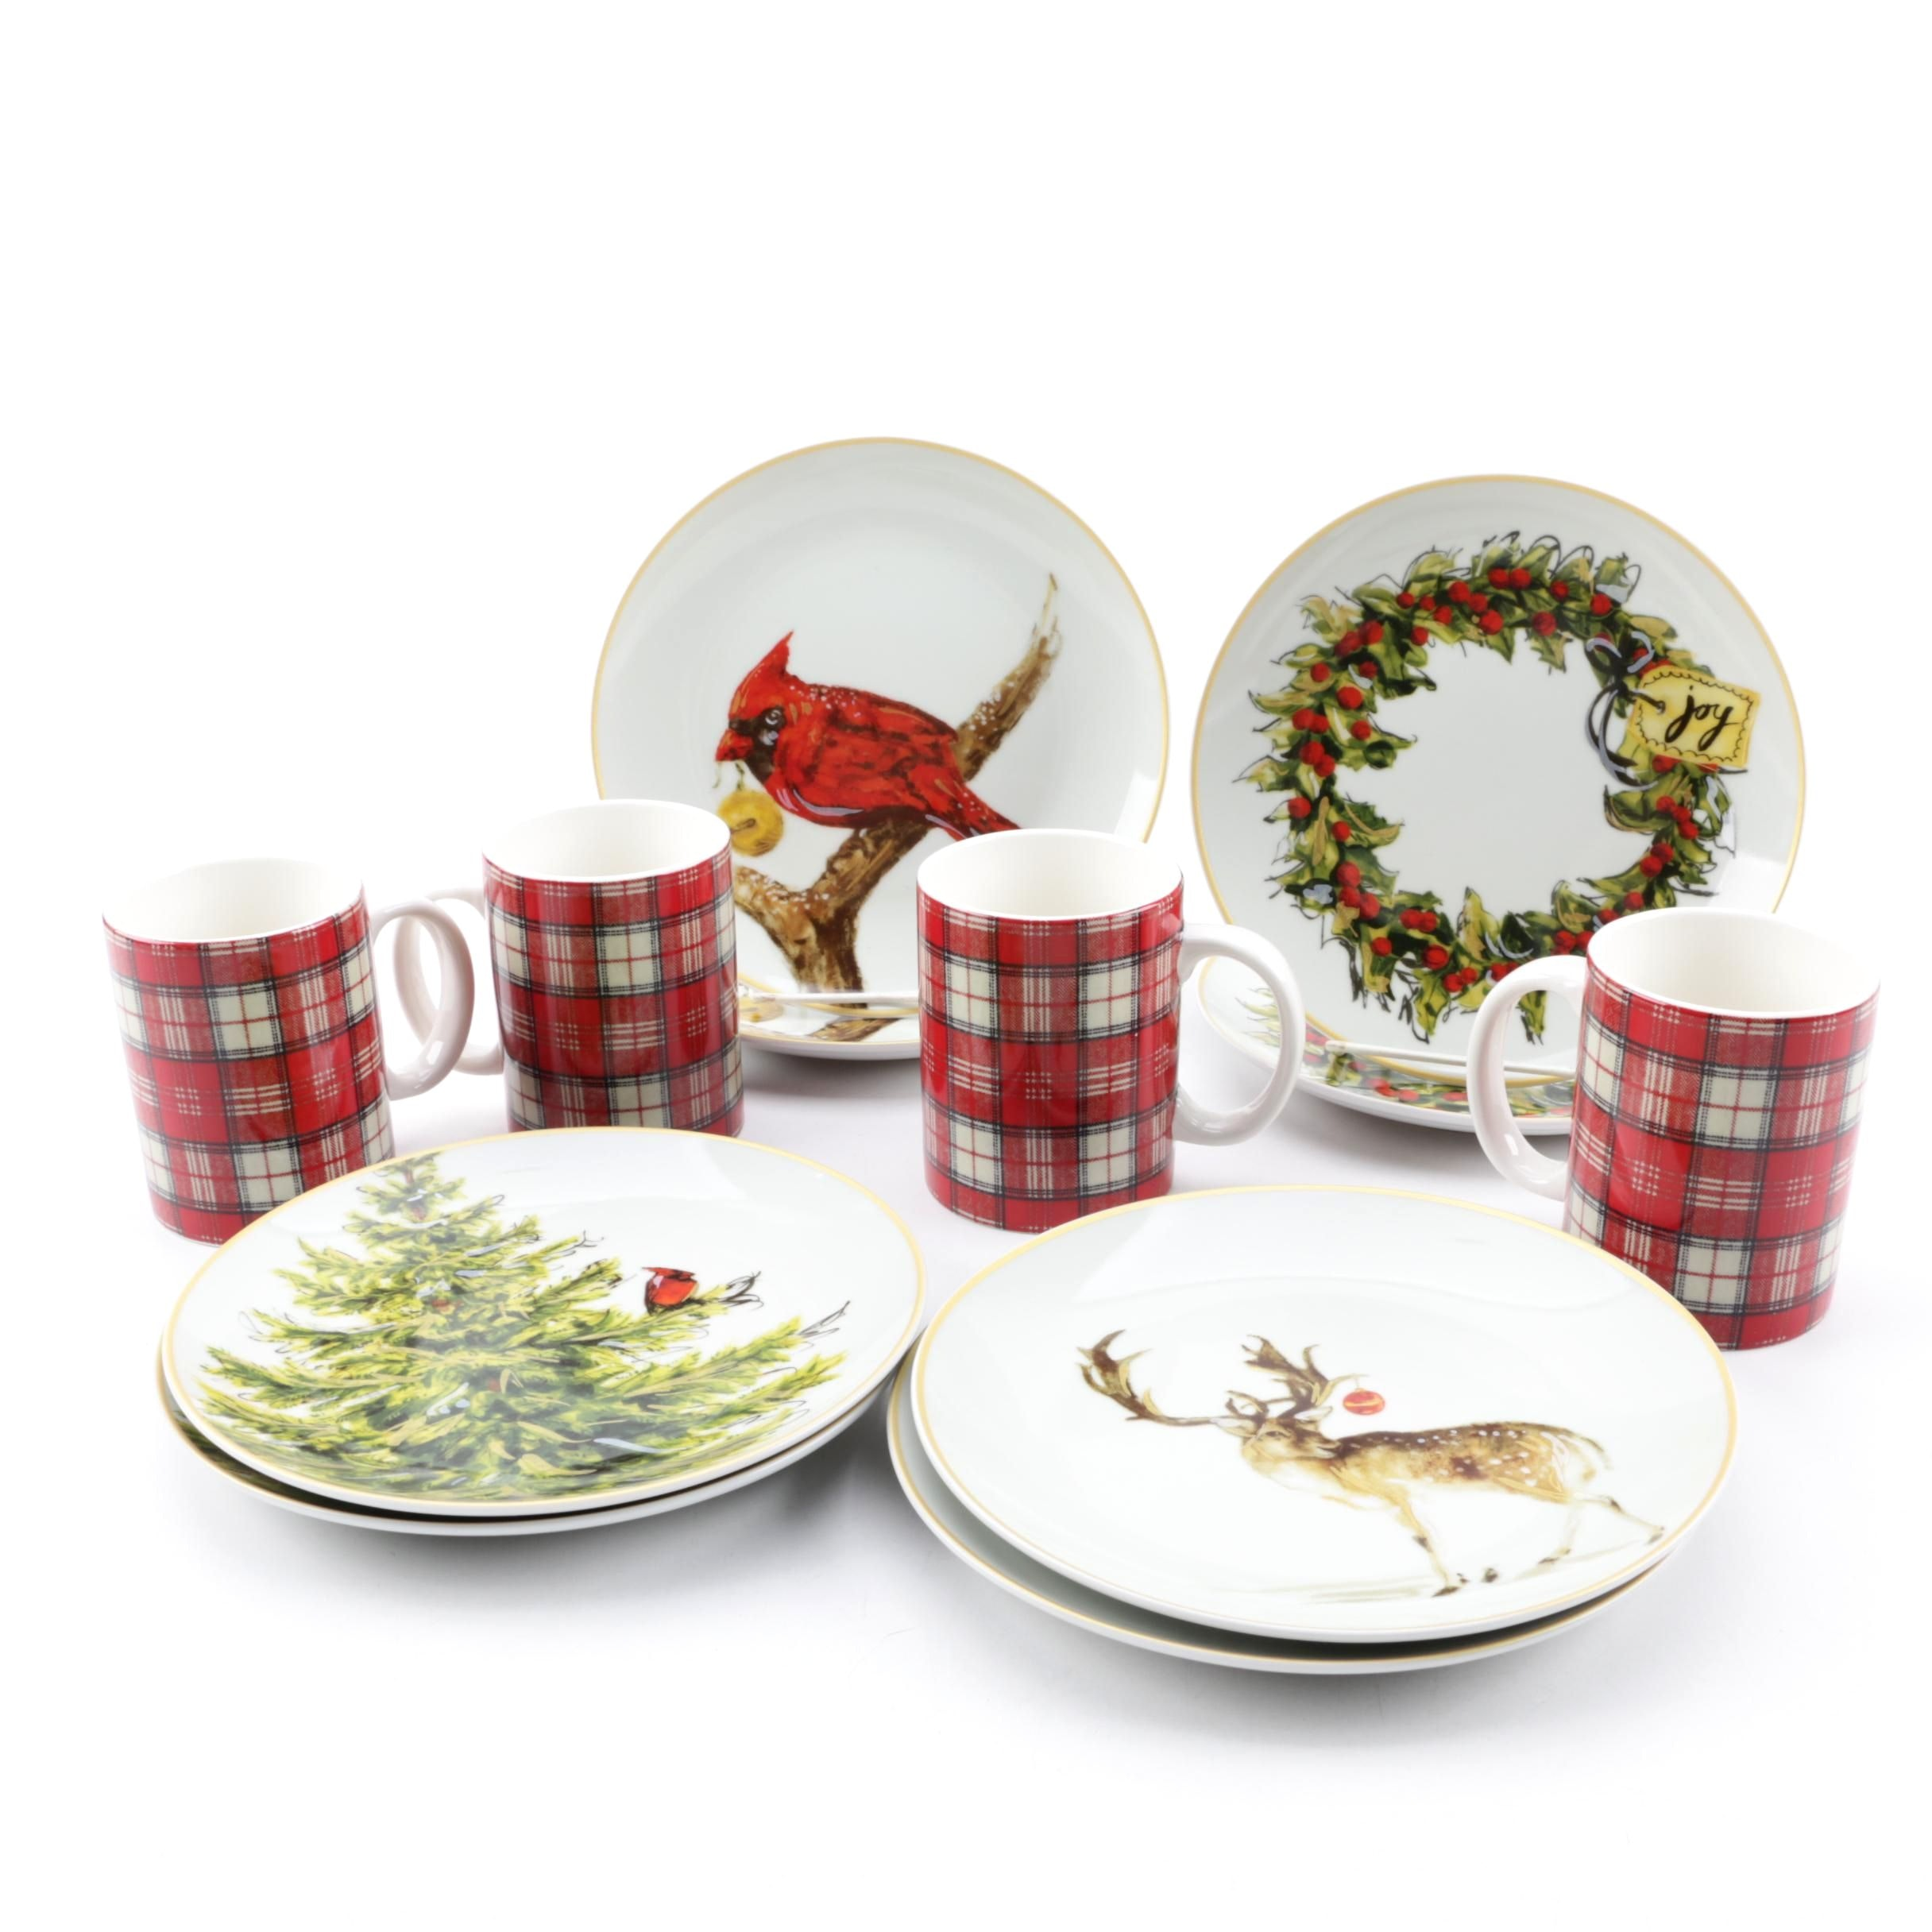 Pottery Barn Holiday Porcelain Plates and Mugs